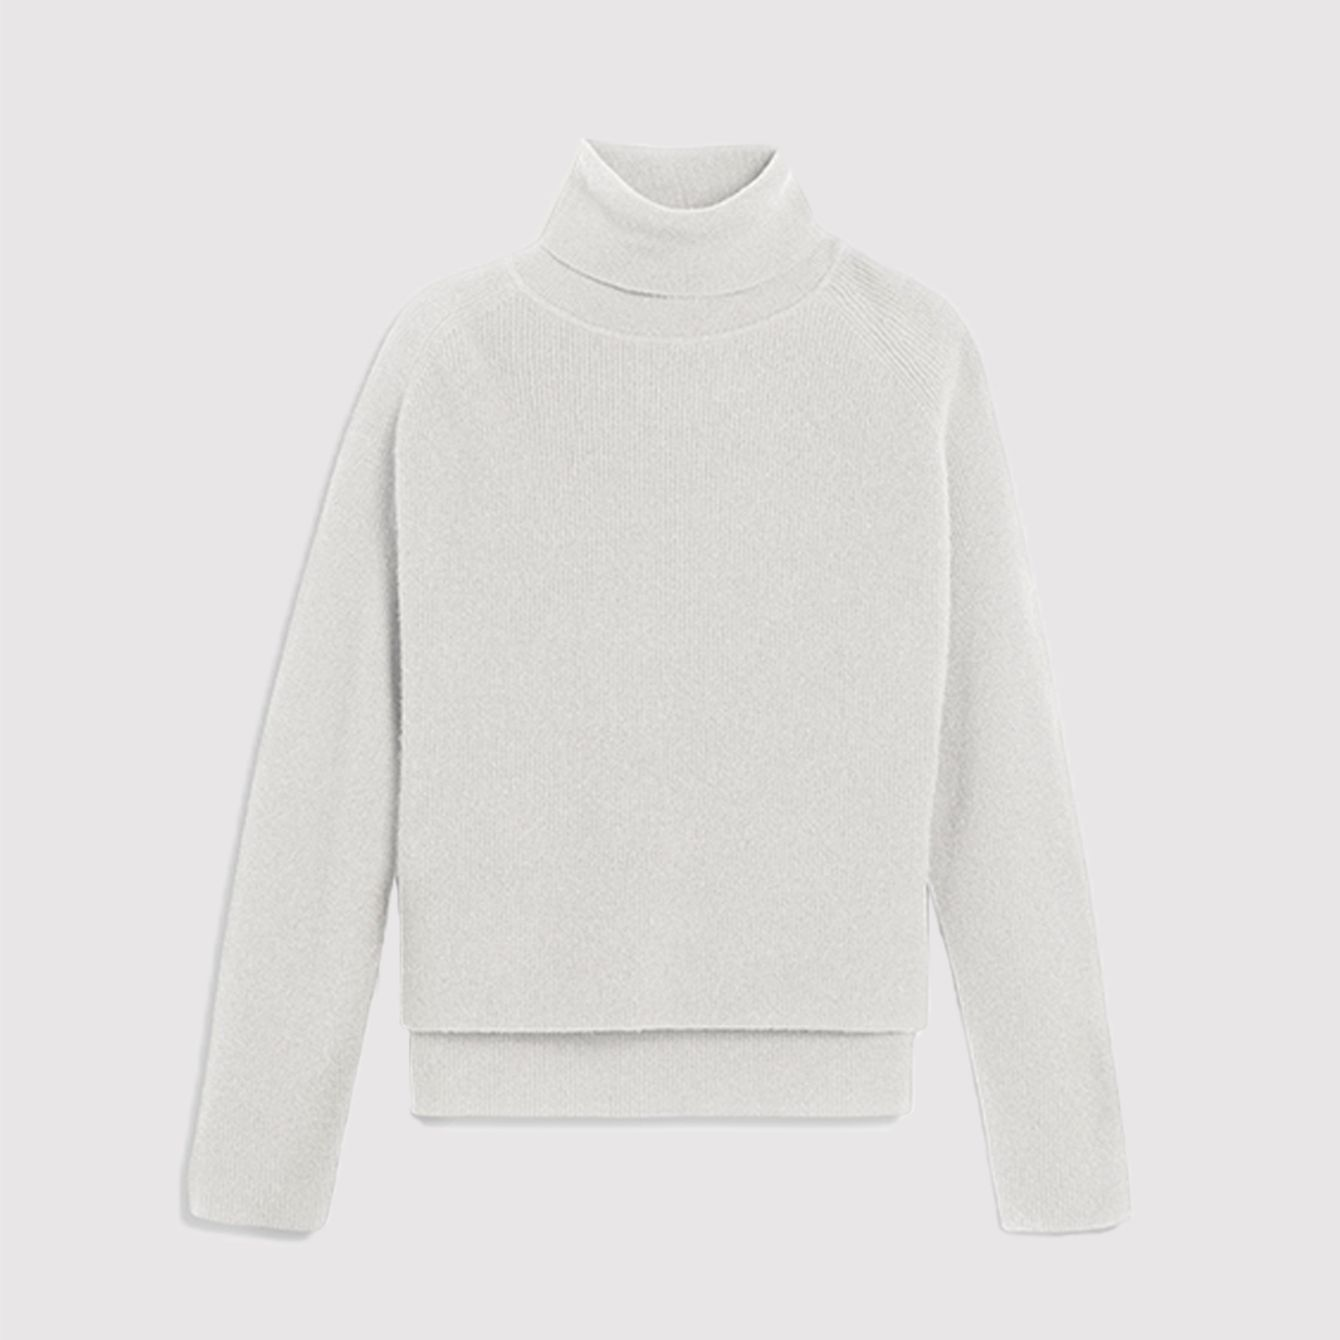 The Arbus Sweater